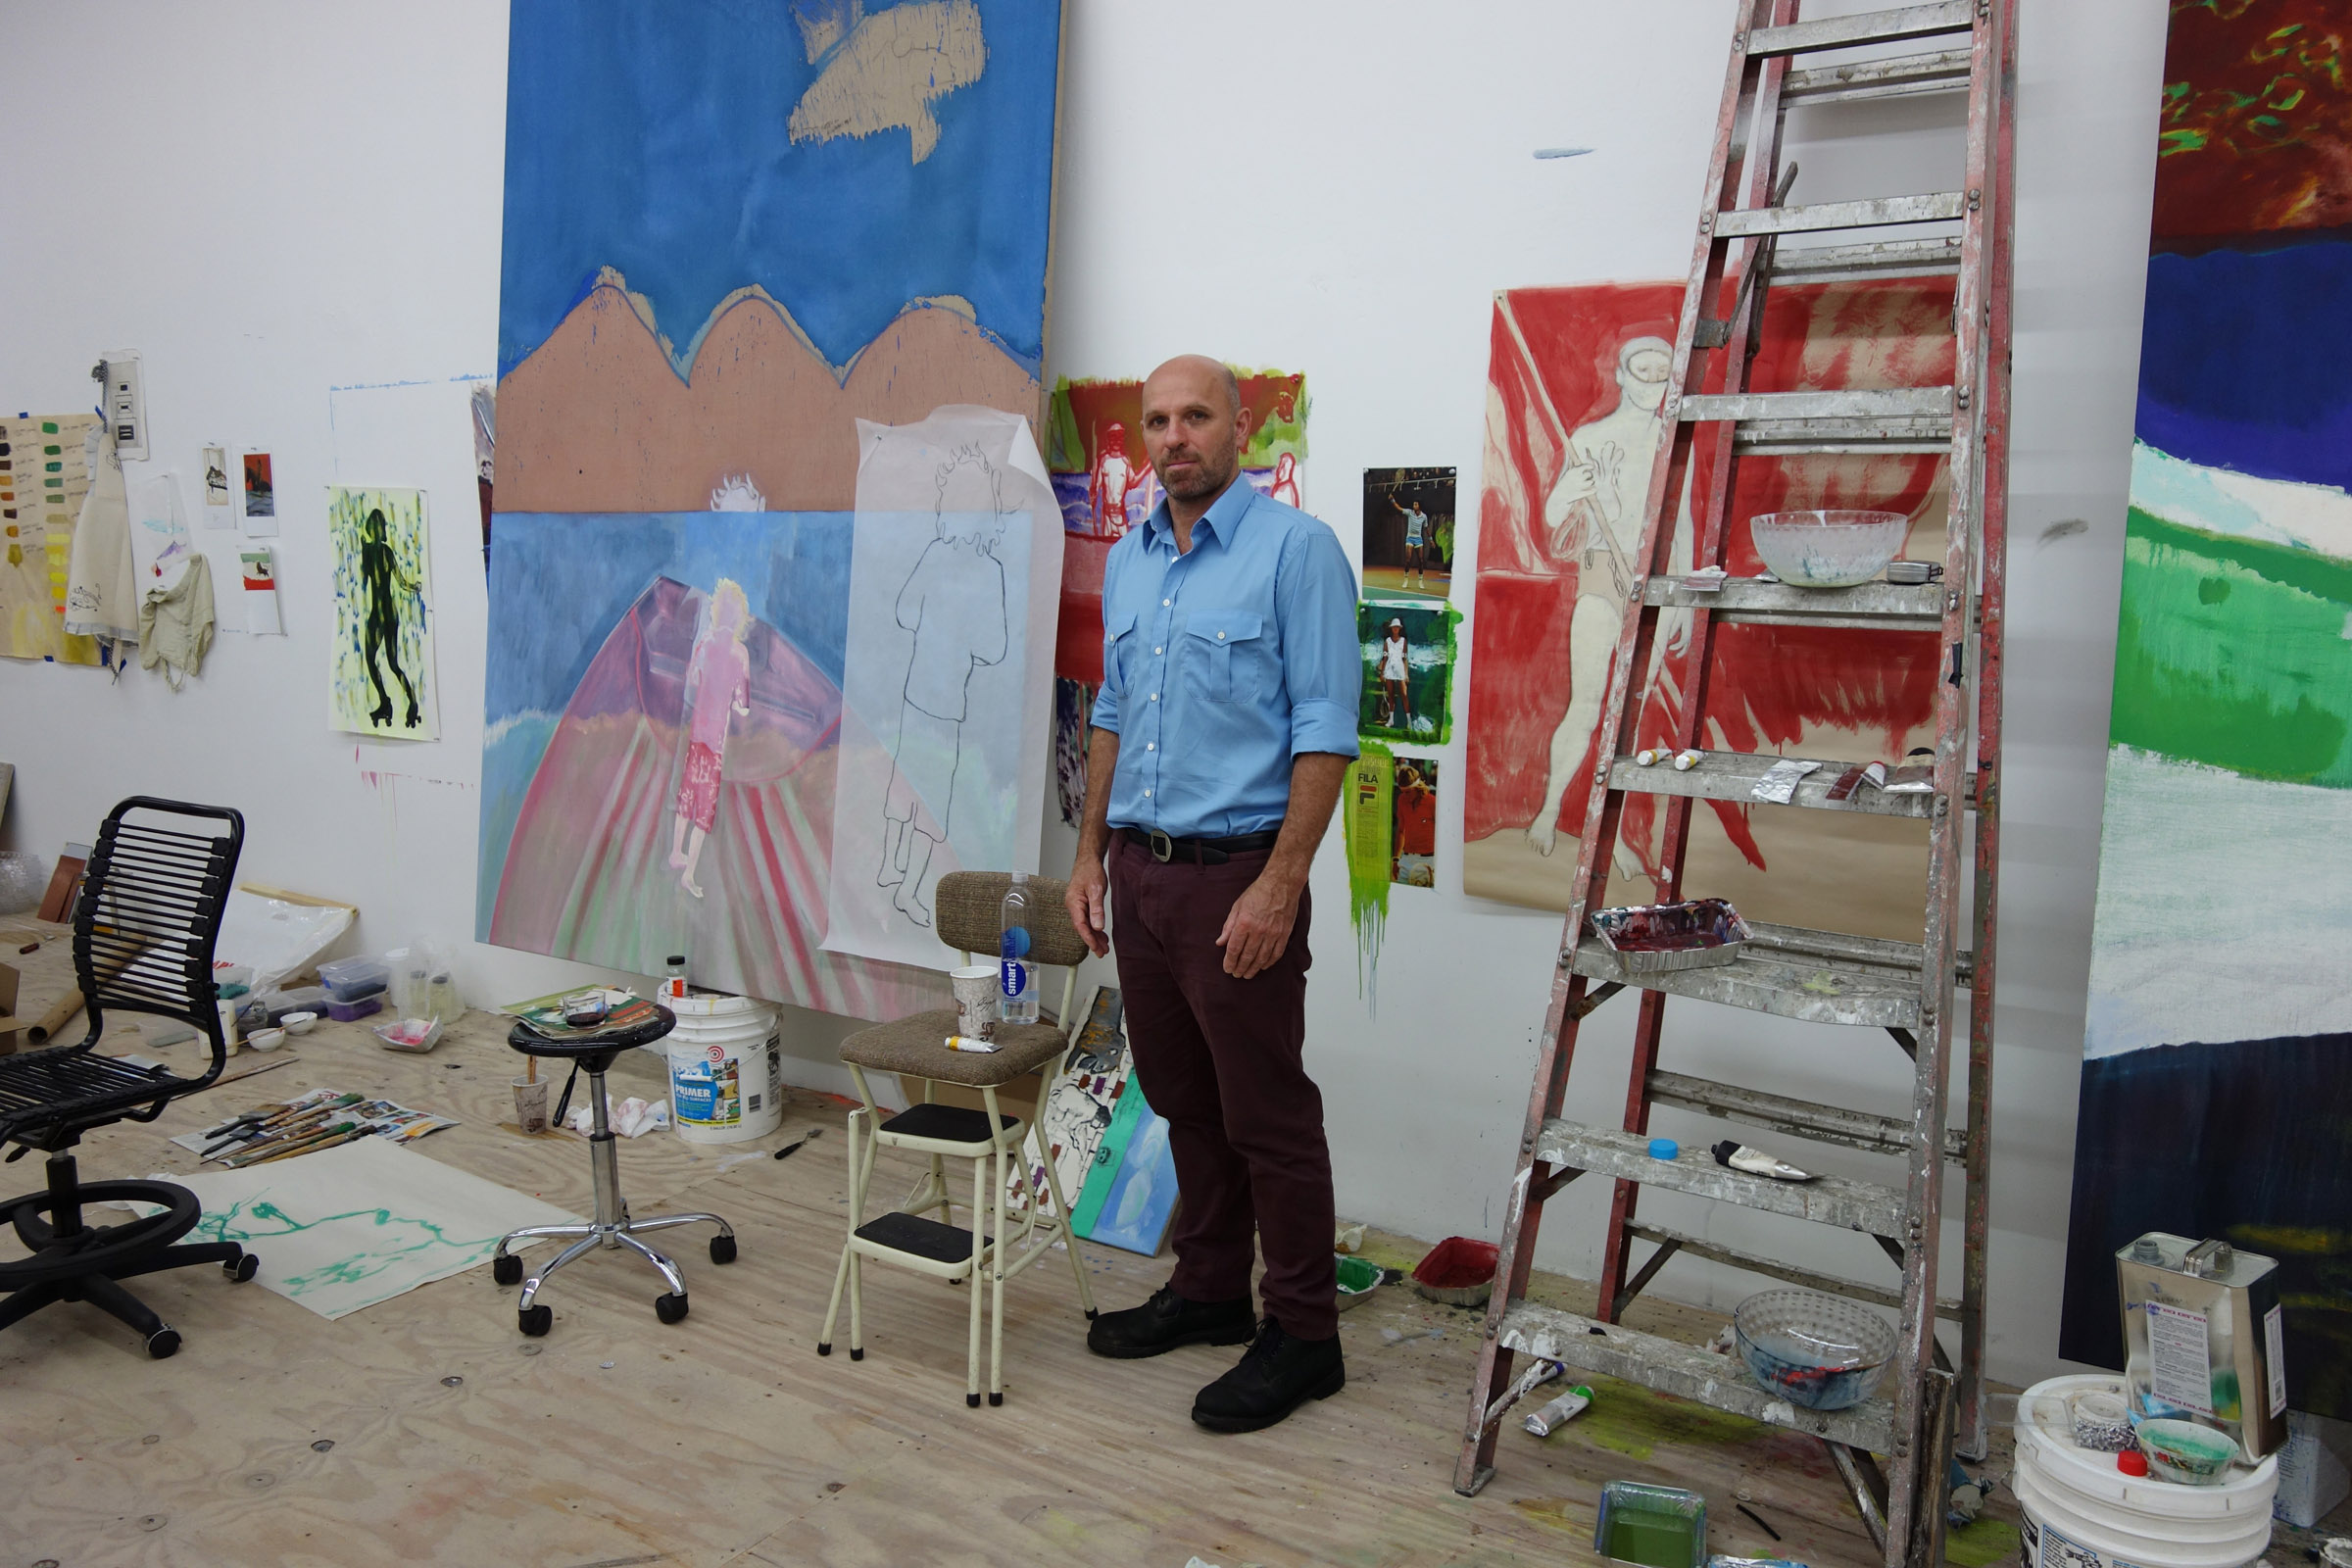 Peter Doig portrait